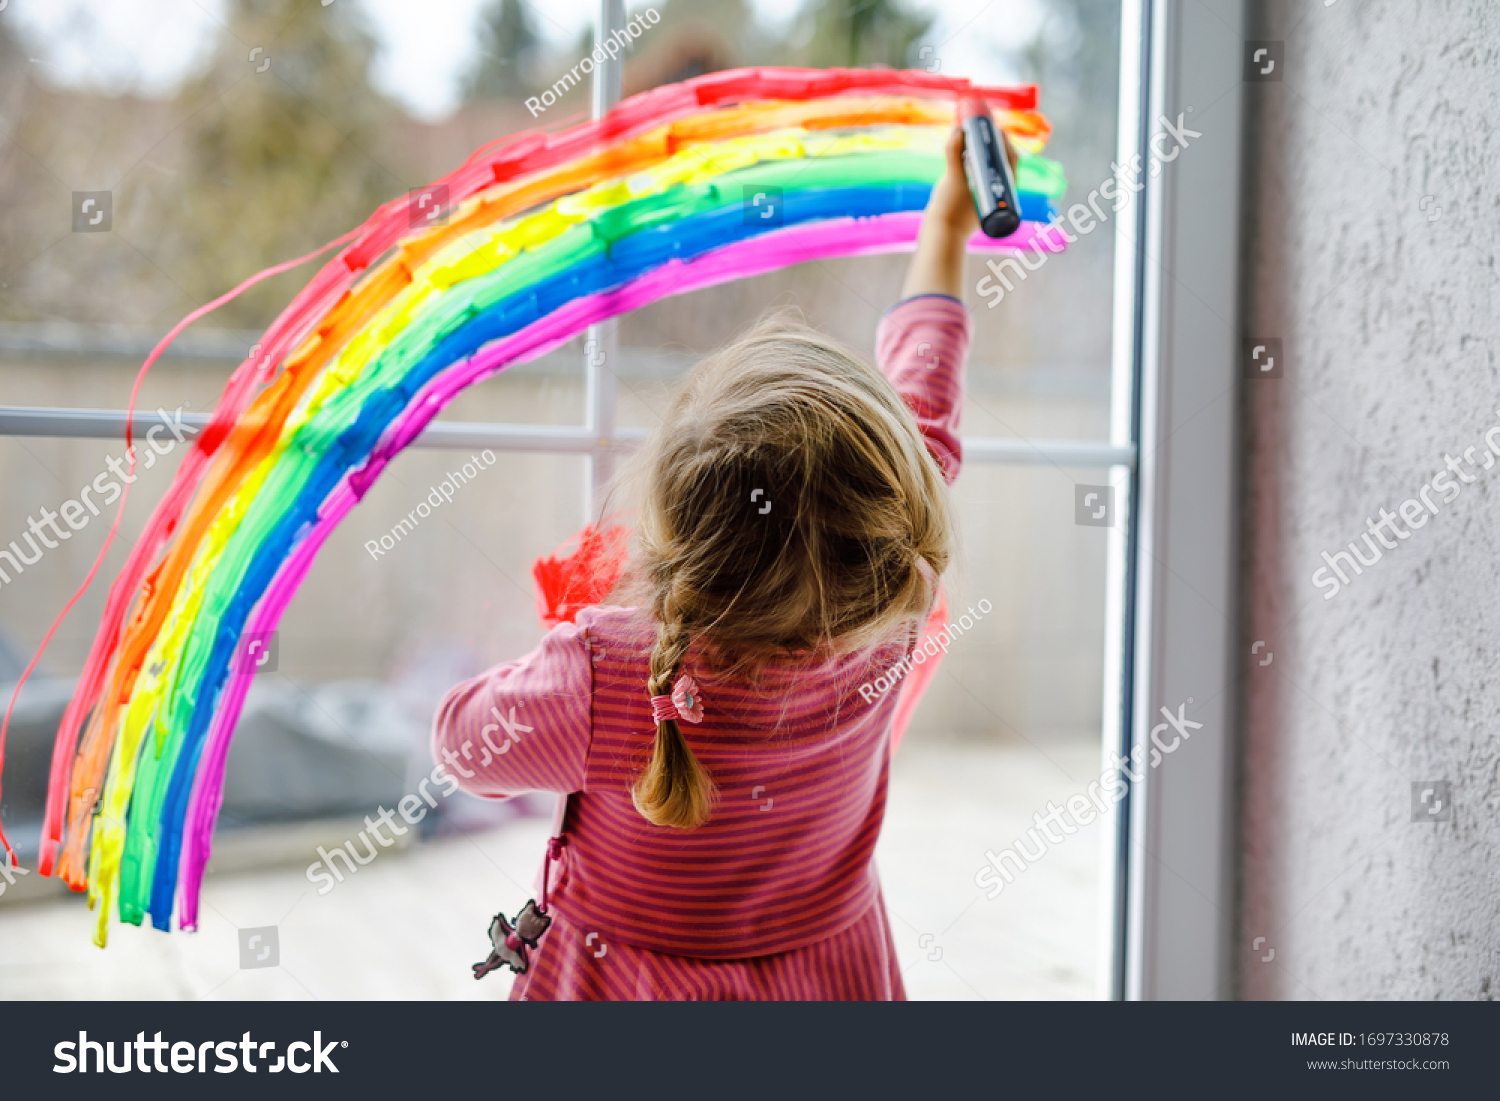 Adoralbe little toddler girl with rainbow painted with colorful window color during pandemic coronavirus quarantine. Child painting rainbows around the world with the words Let's all be well. #1697330878